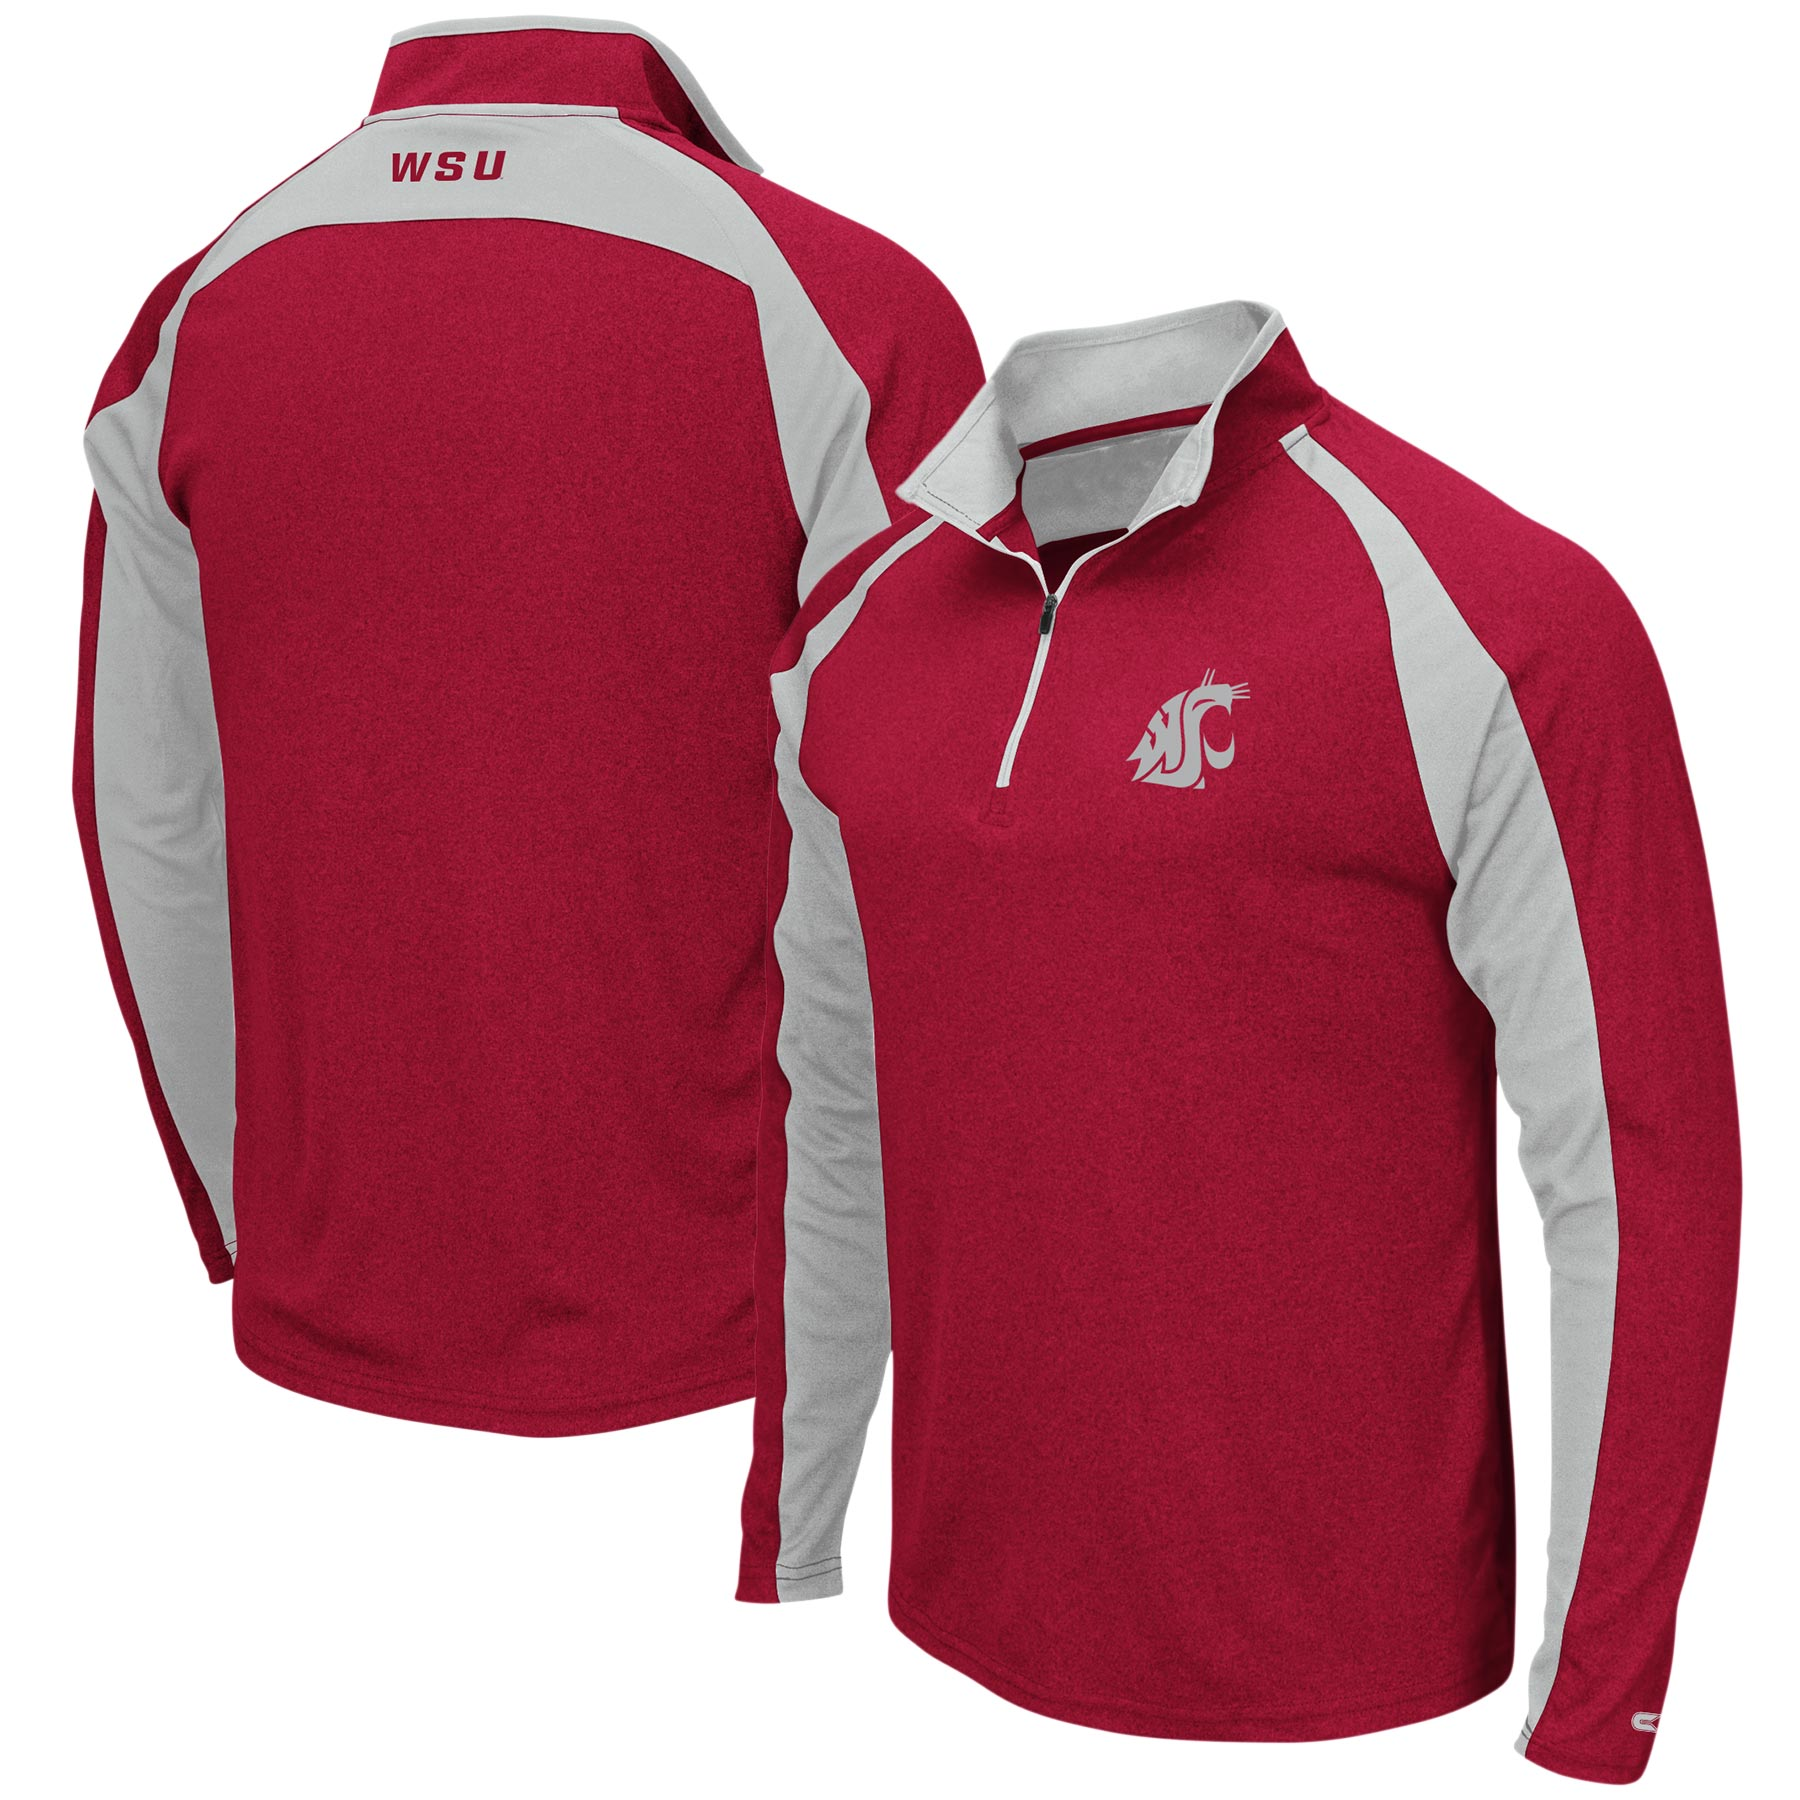 Washington State Cougars Colosseum The J. Peterman Quarter-Zip Pullover Jacket – Heathered Crimson